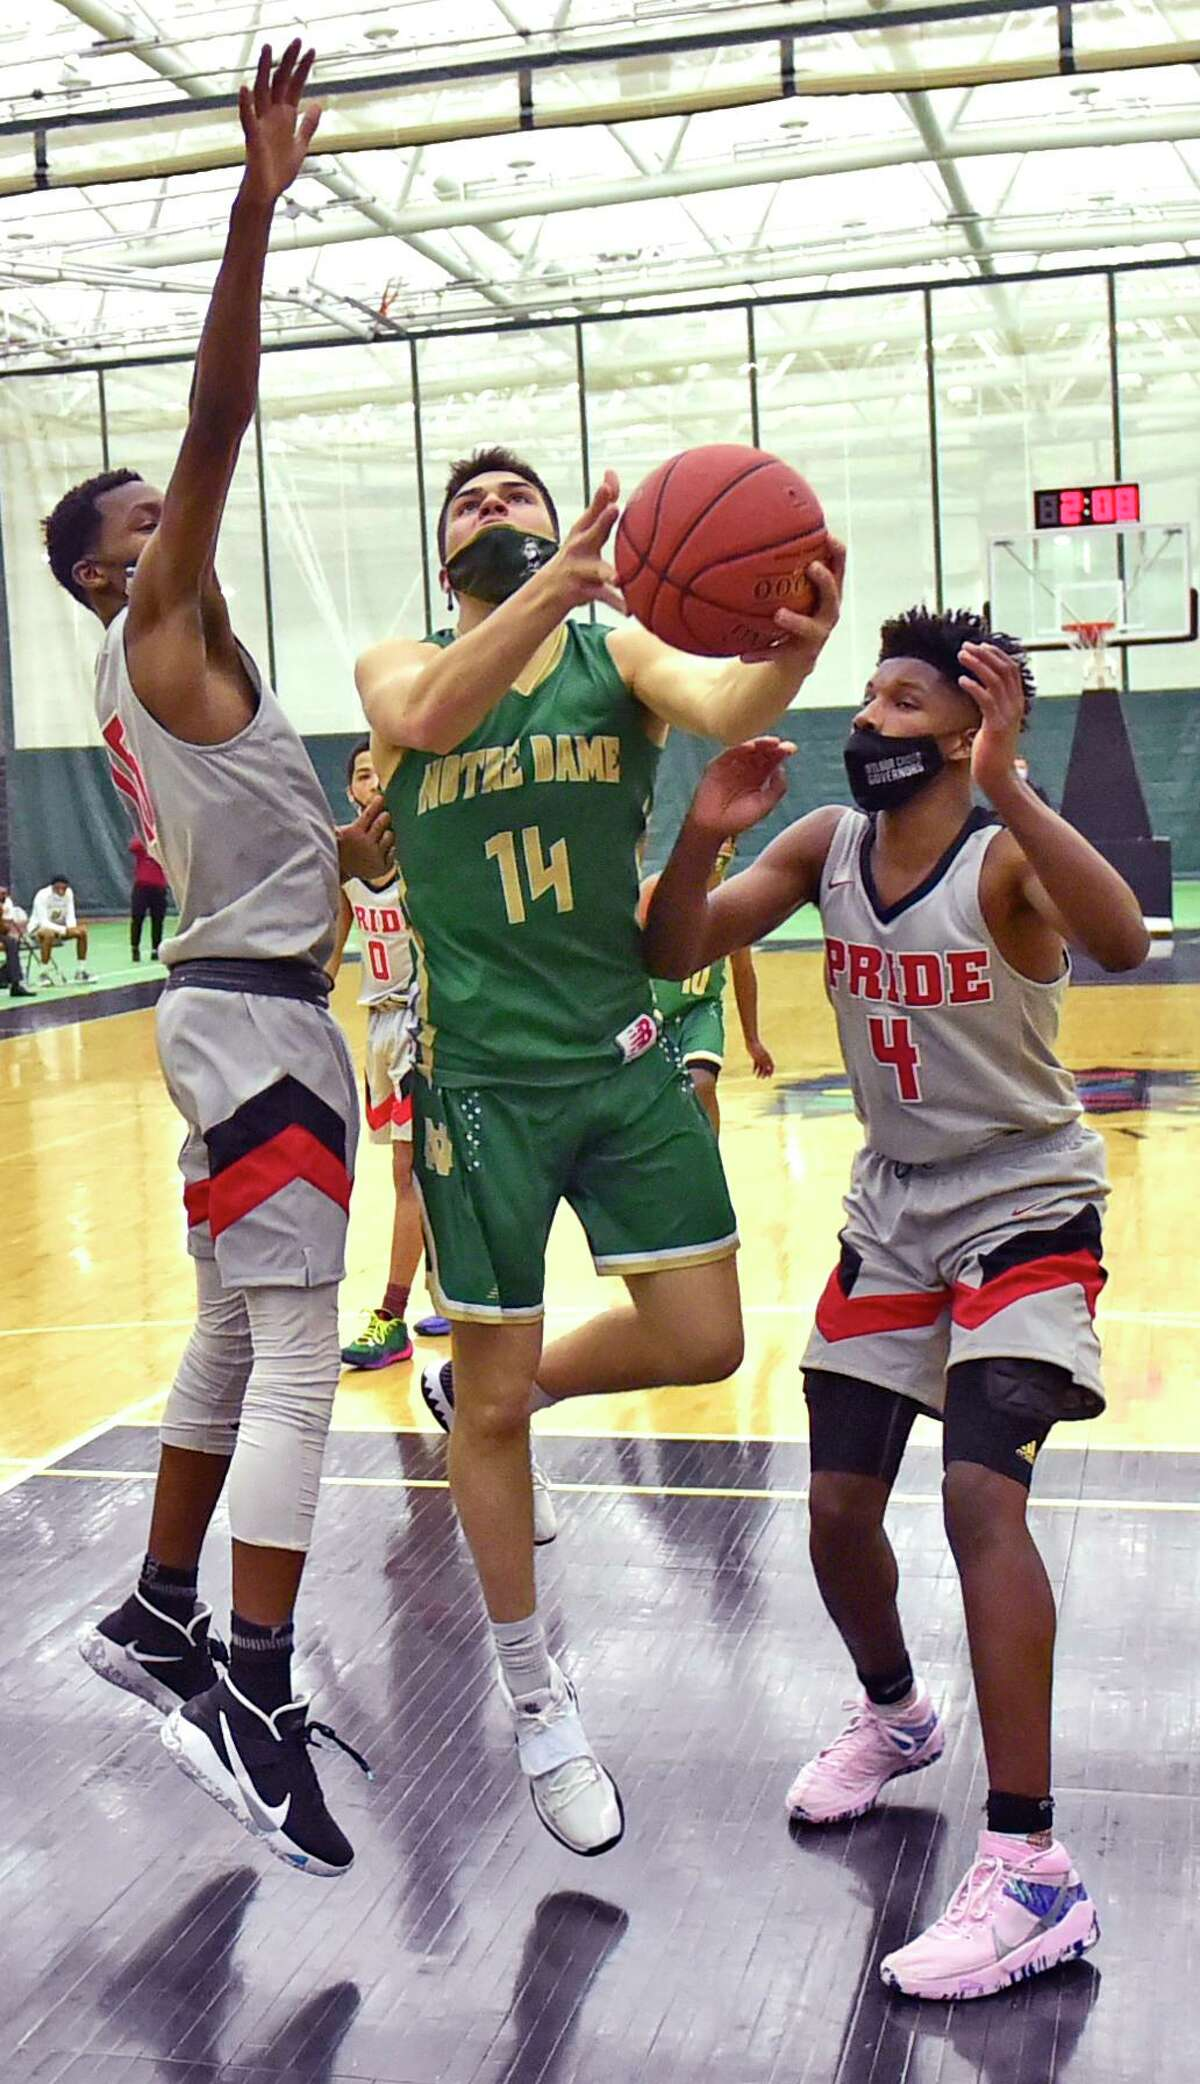 Notre Dame-West Haven's Matthew Dobie drives to the basket against Wilbur Cross during the second quarter at the Floyd Little Athletic Center in New Haven on Tuesday.